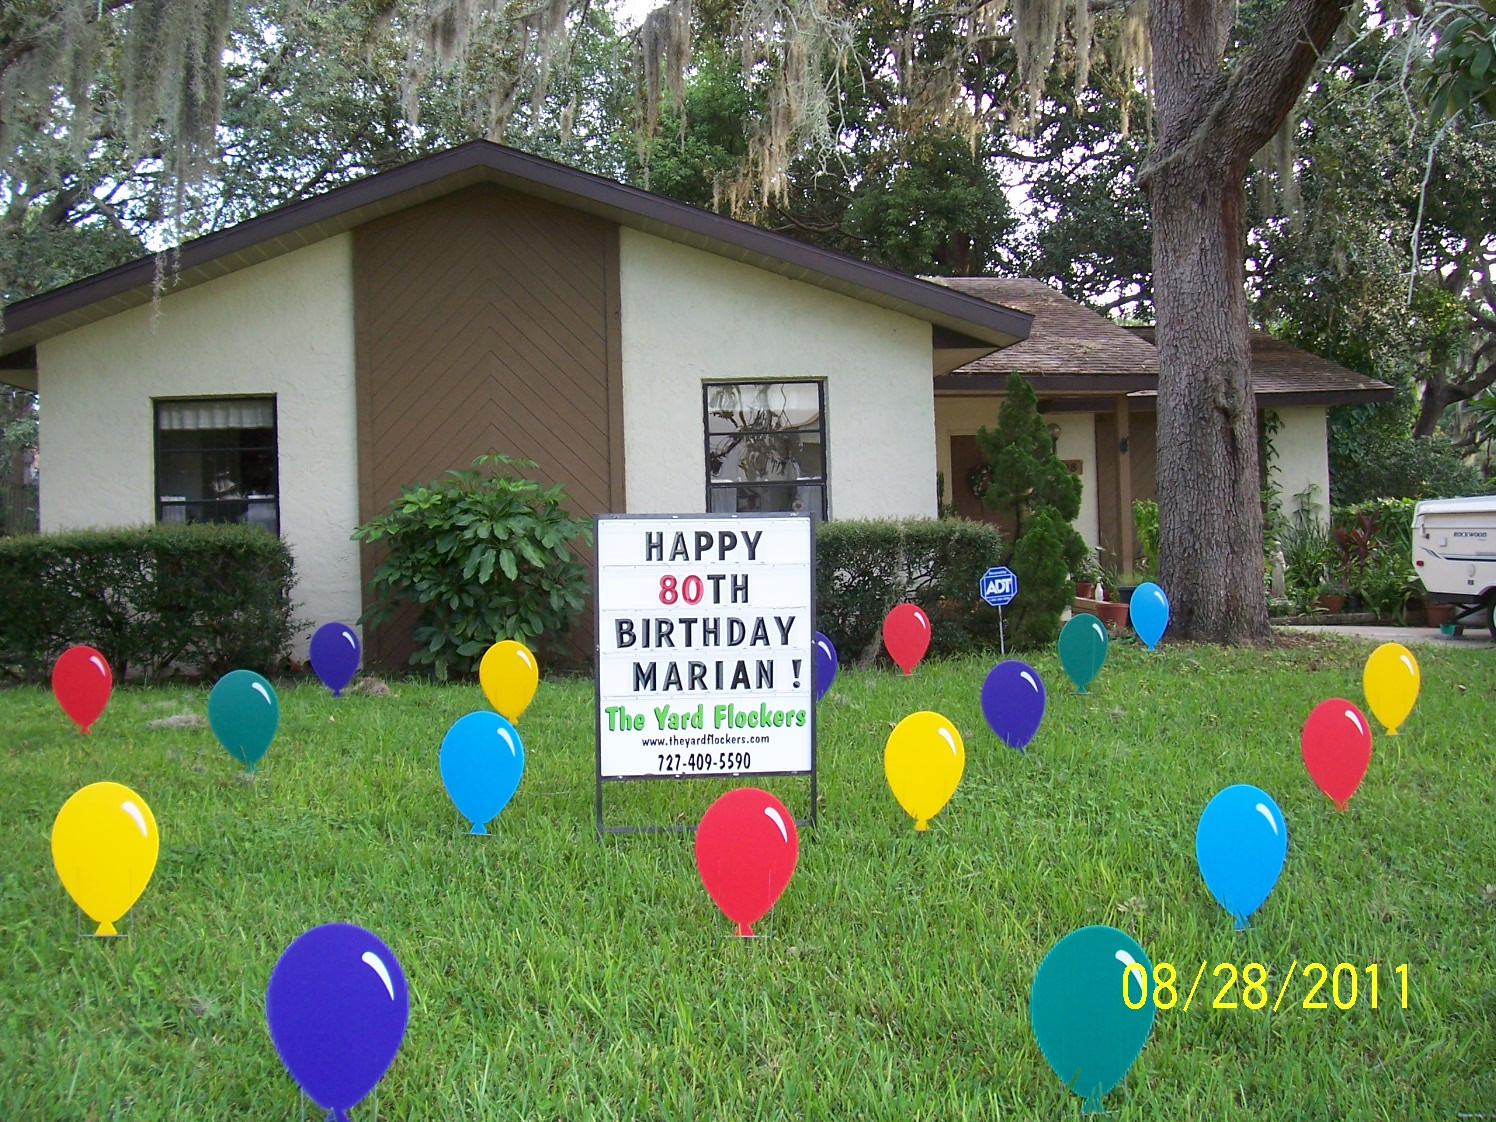 Best ideas about Birthday Yard Decorations . Save or Pin THE YARD FLOCKERS Pinellas County Fla 727 409 5590 Now.